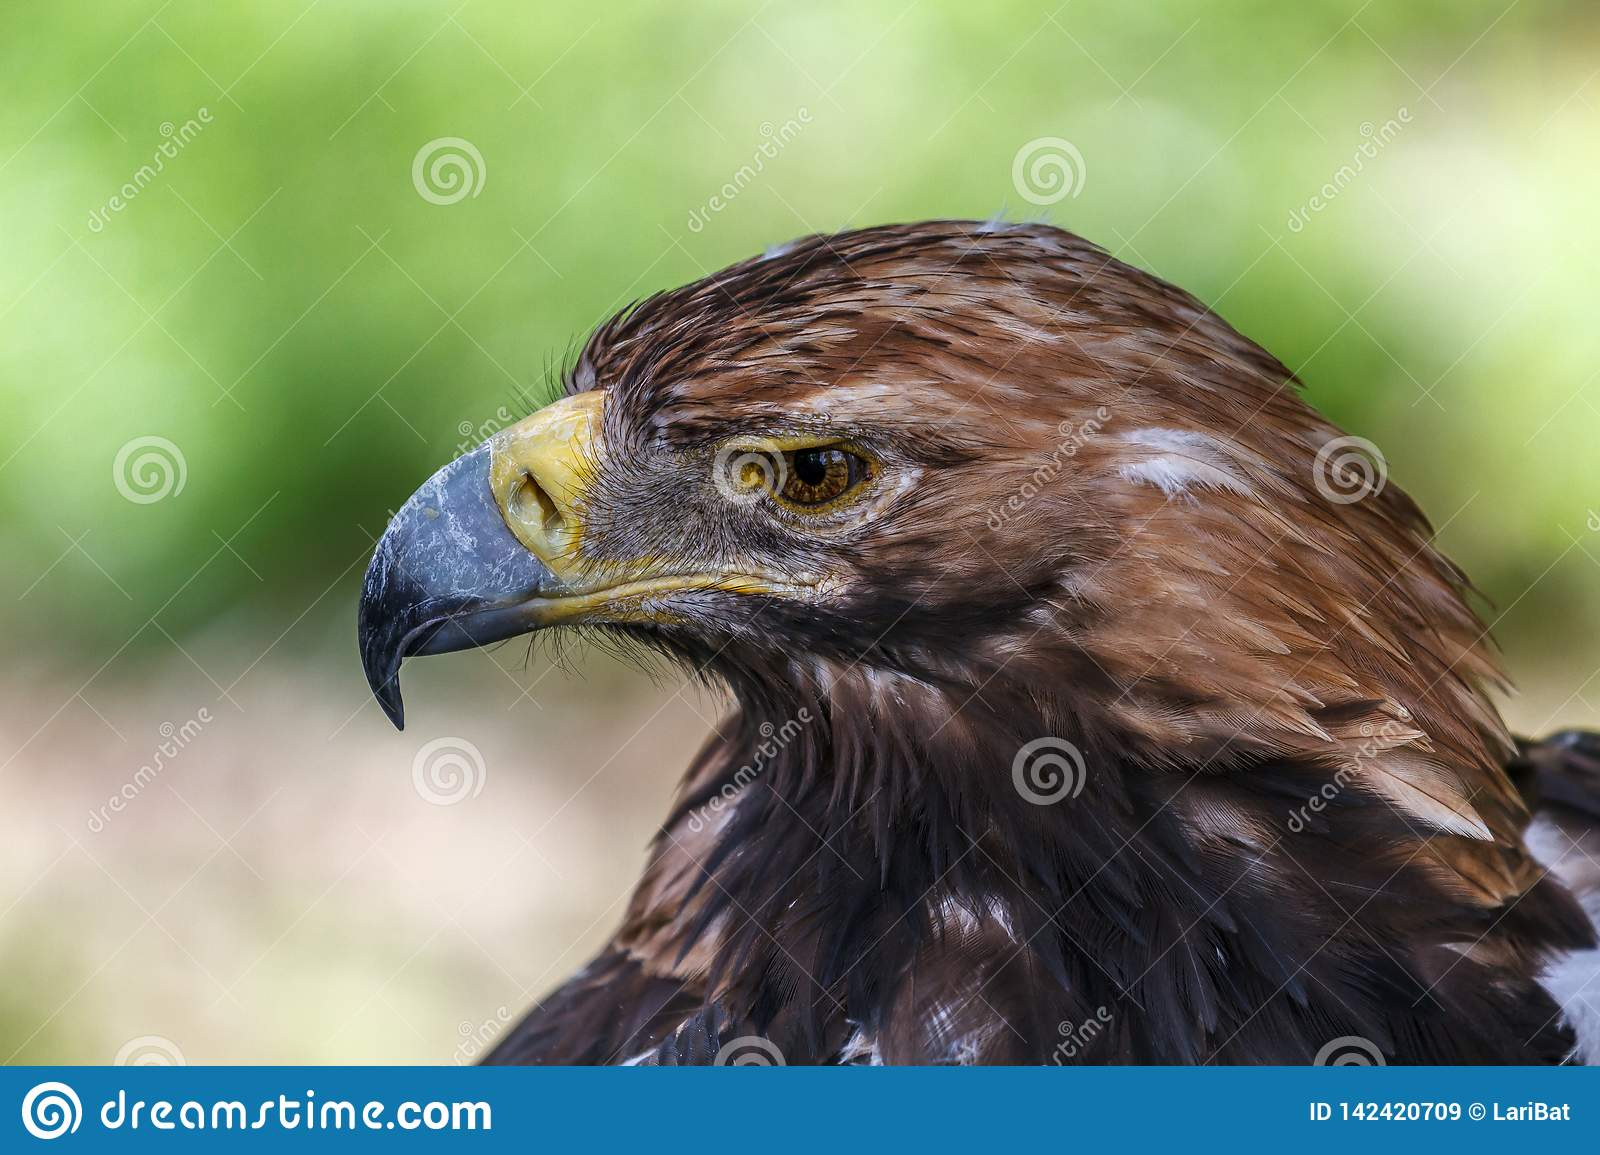 Pensive look of an eagle